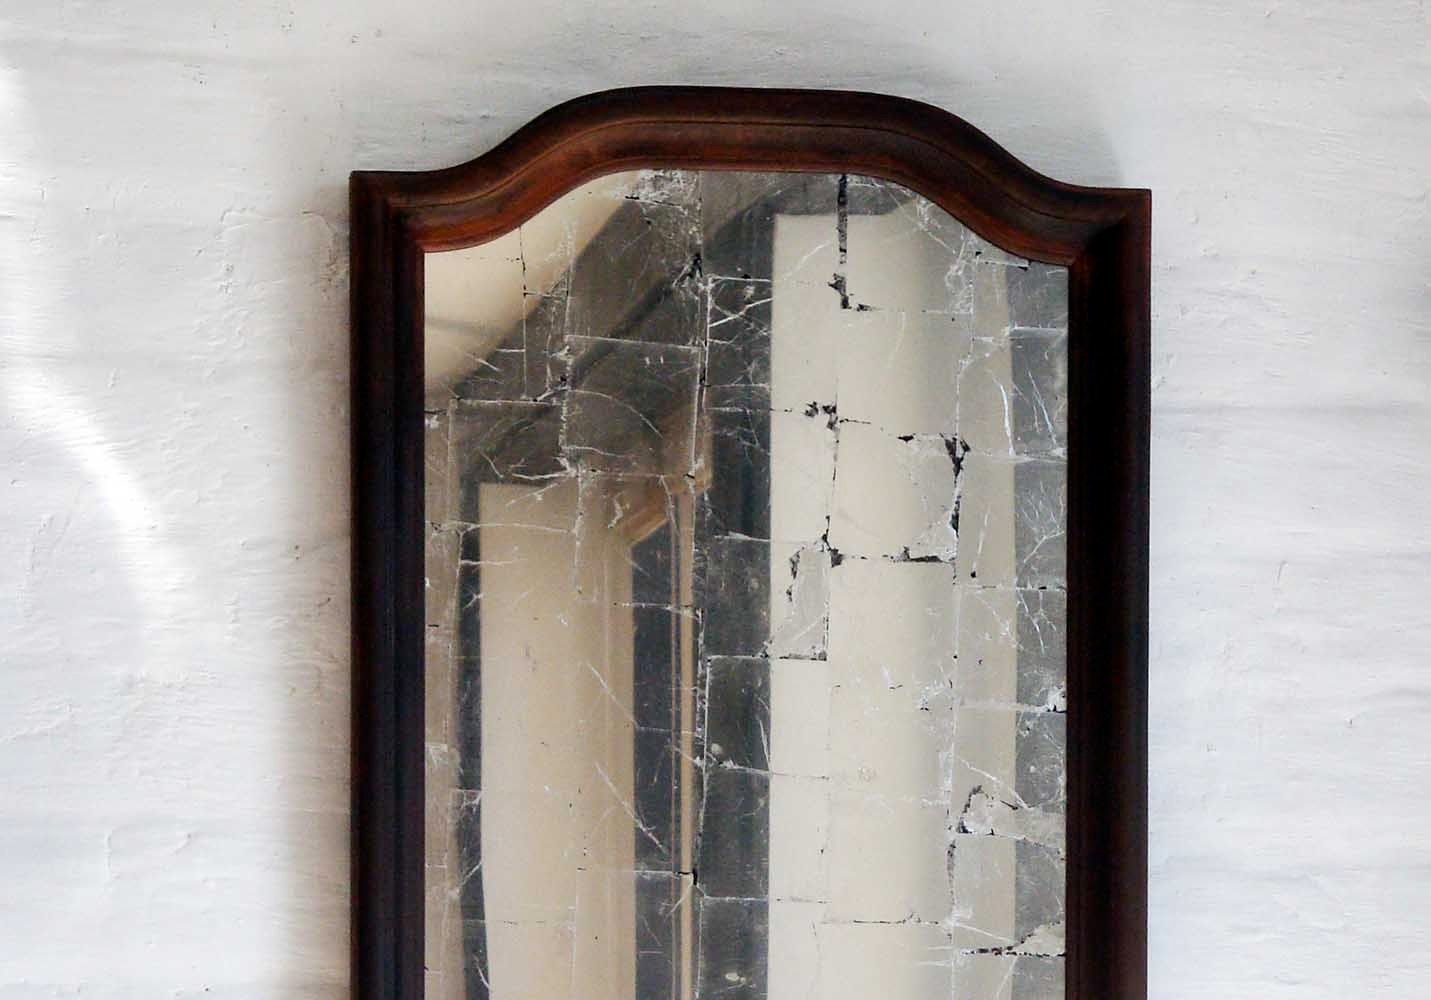 Verre Eglomise Mirror & Rusted Frame, Tall